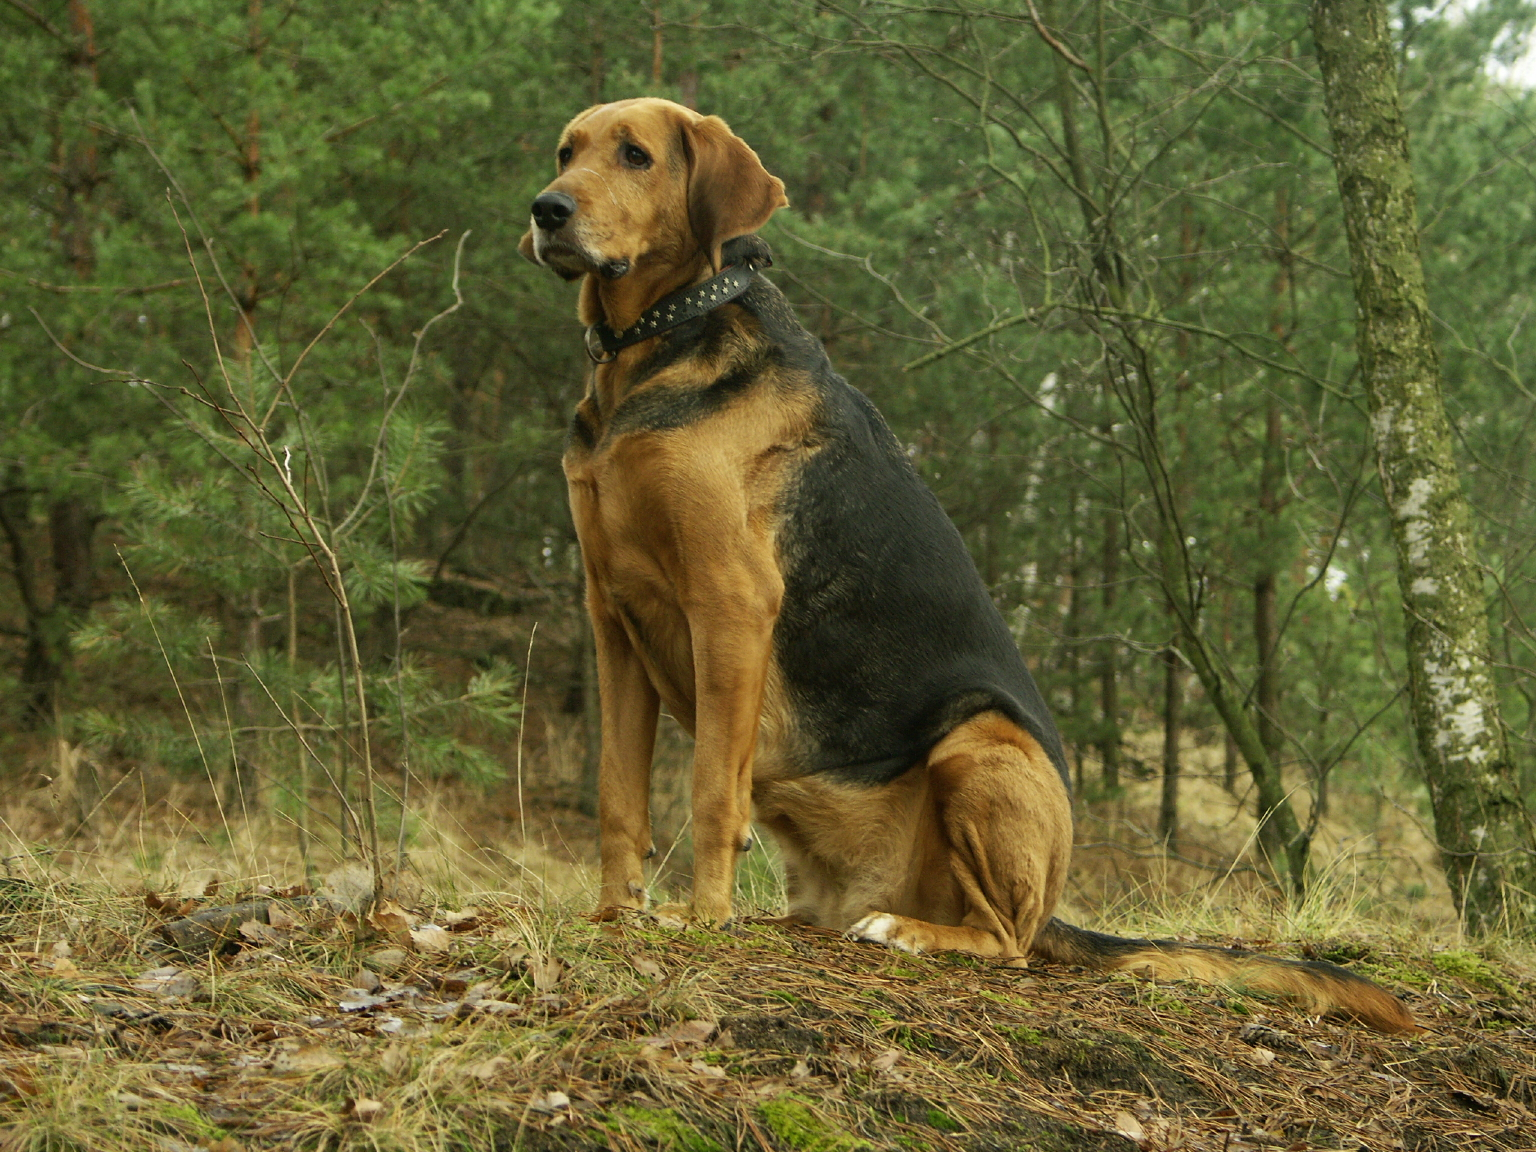 Cute Andalusian Hound Puppies: Cute Polish Hound Dog In The Forest Breed